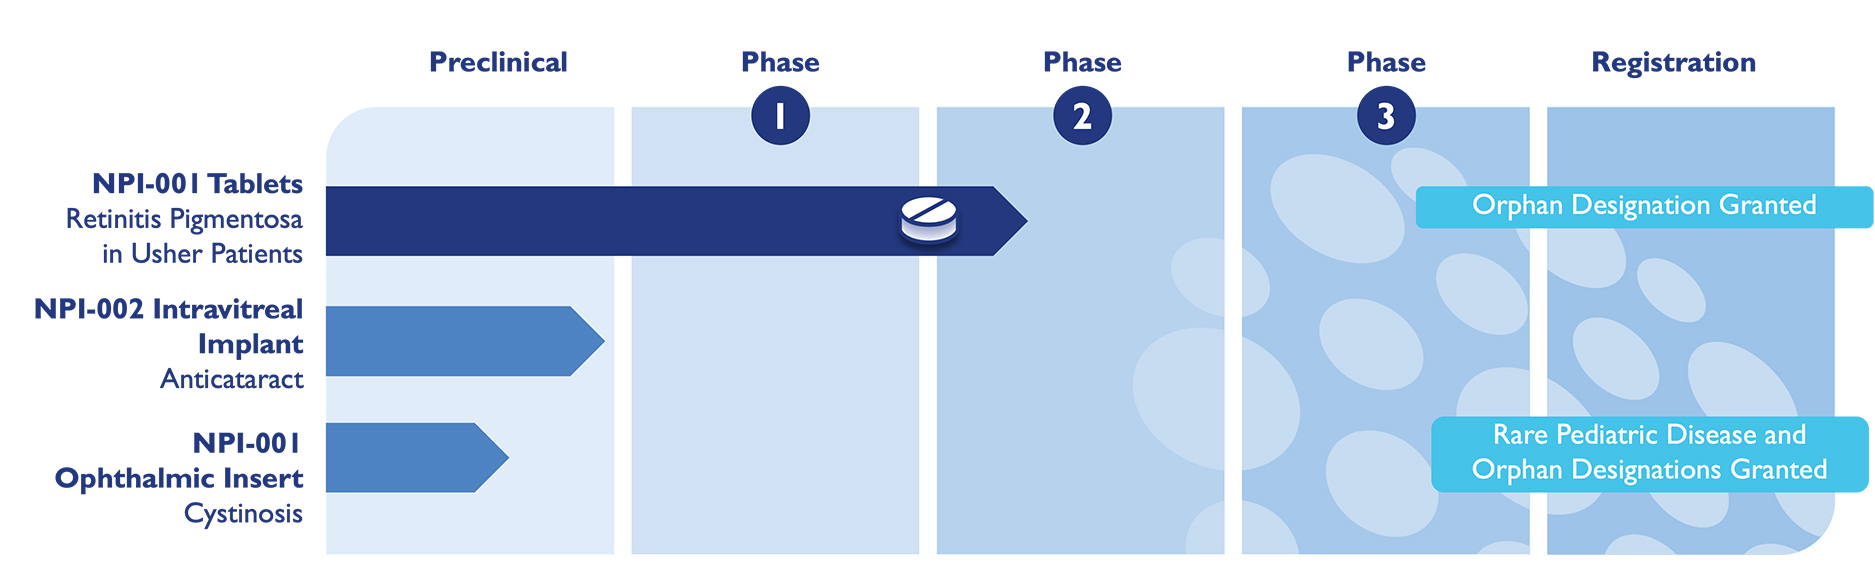 a graphic showing the pipeline stages from Preclinical through Phases 1, 2, 3, and Registration for each project